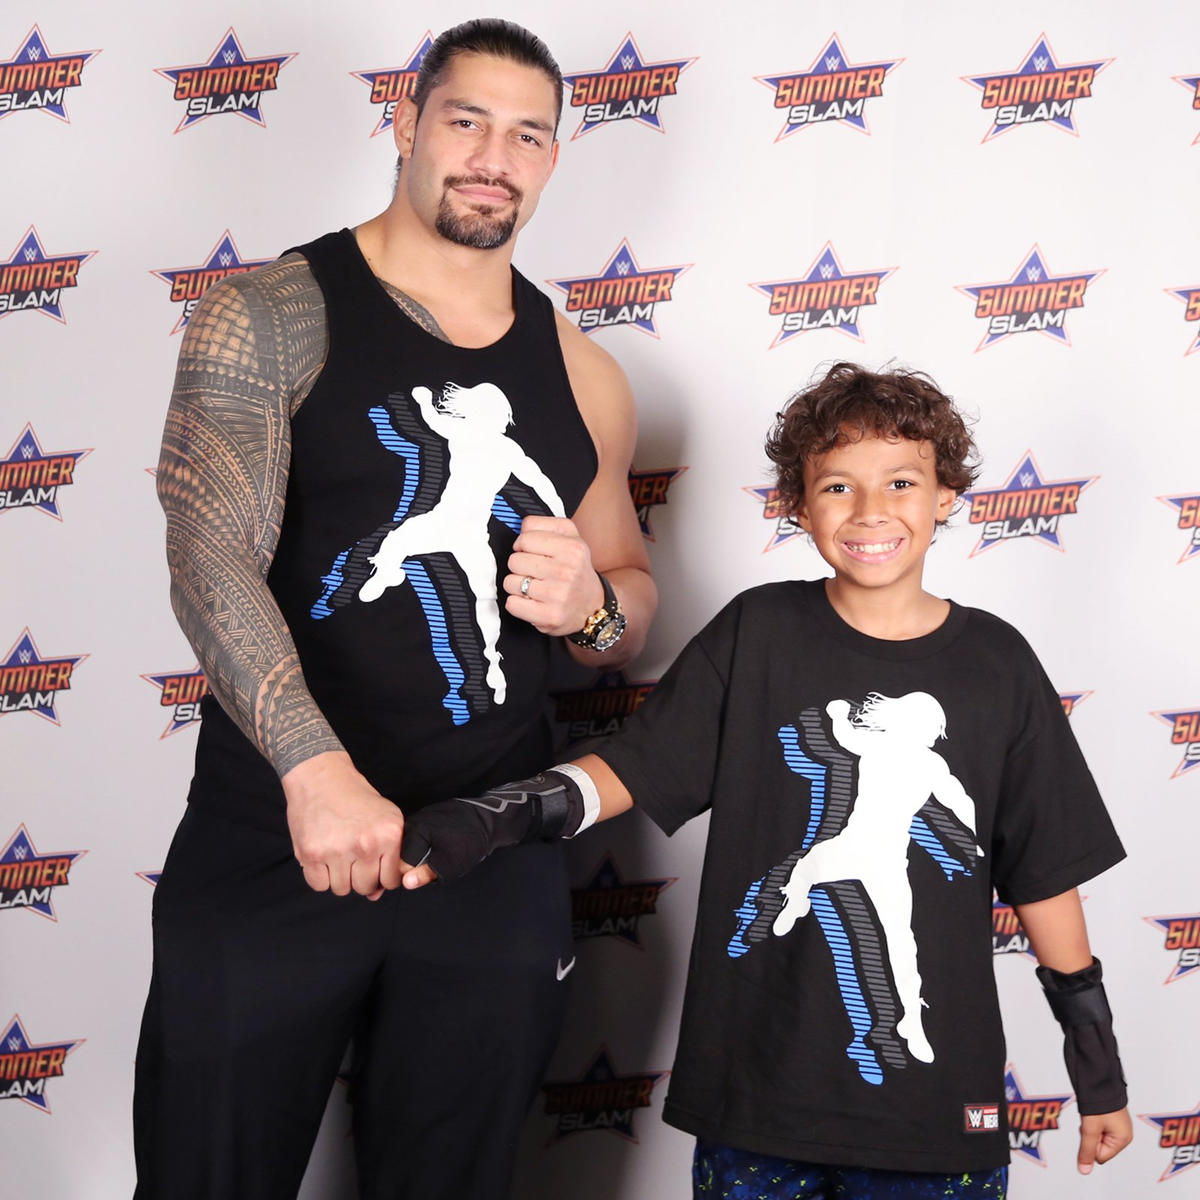 Roman reigns and the new day meet the wwe universe in a summerslam ready to go head to head with brock lesnar braun strowman and samoa wwe photo kristyandbryce Image collections